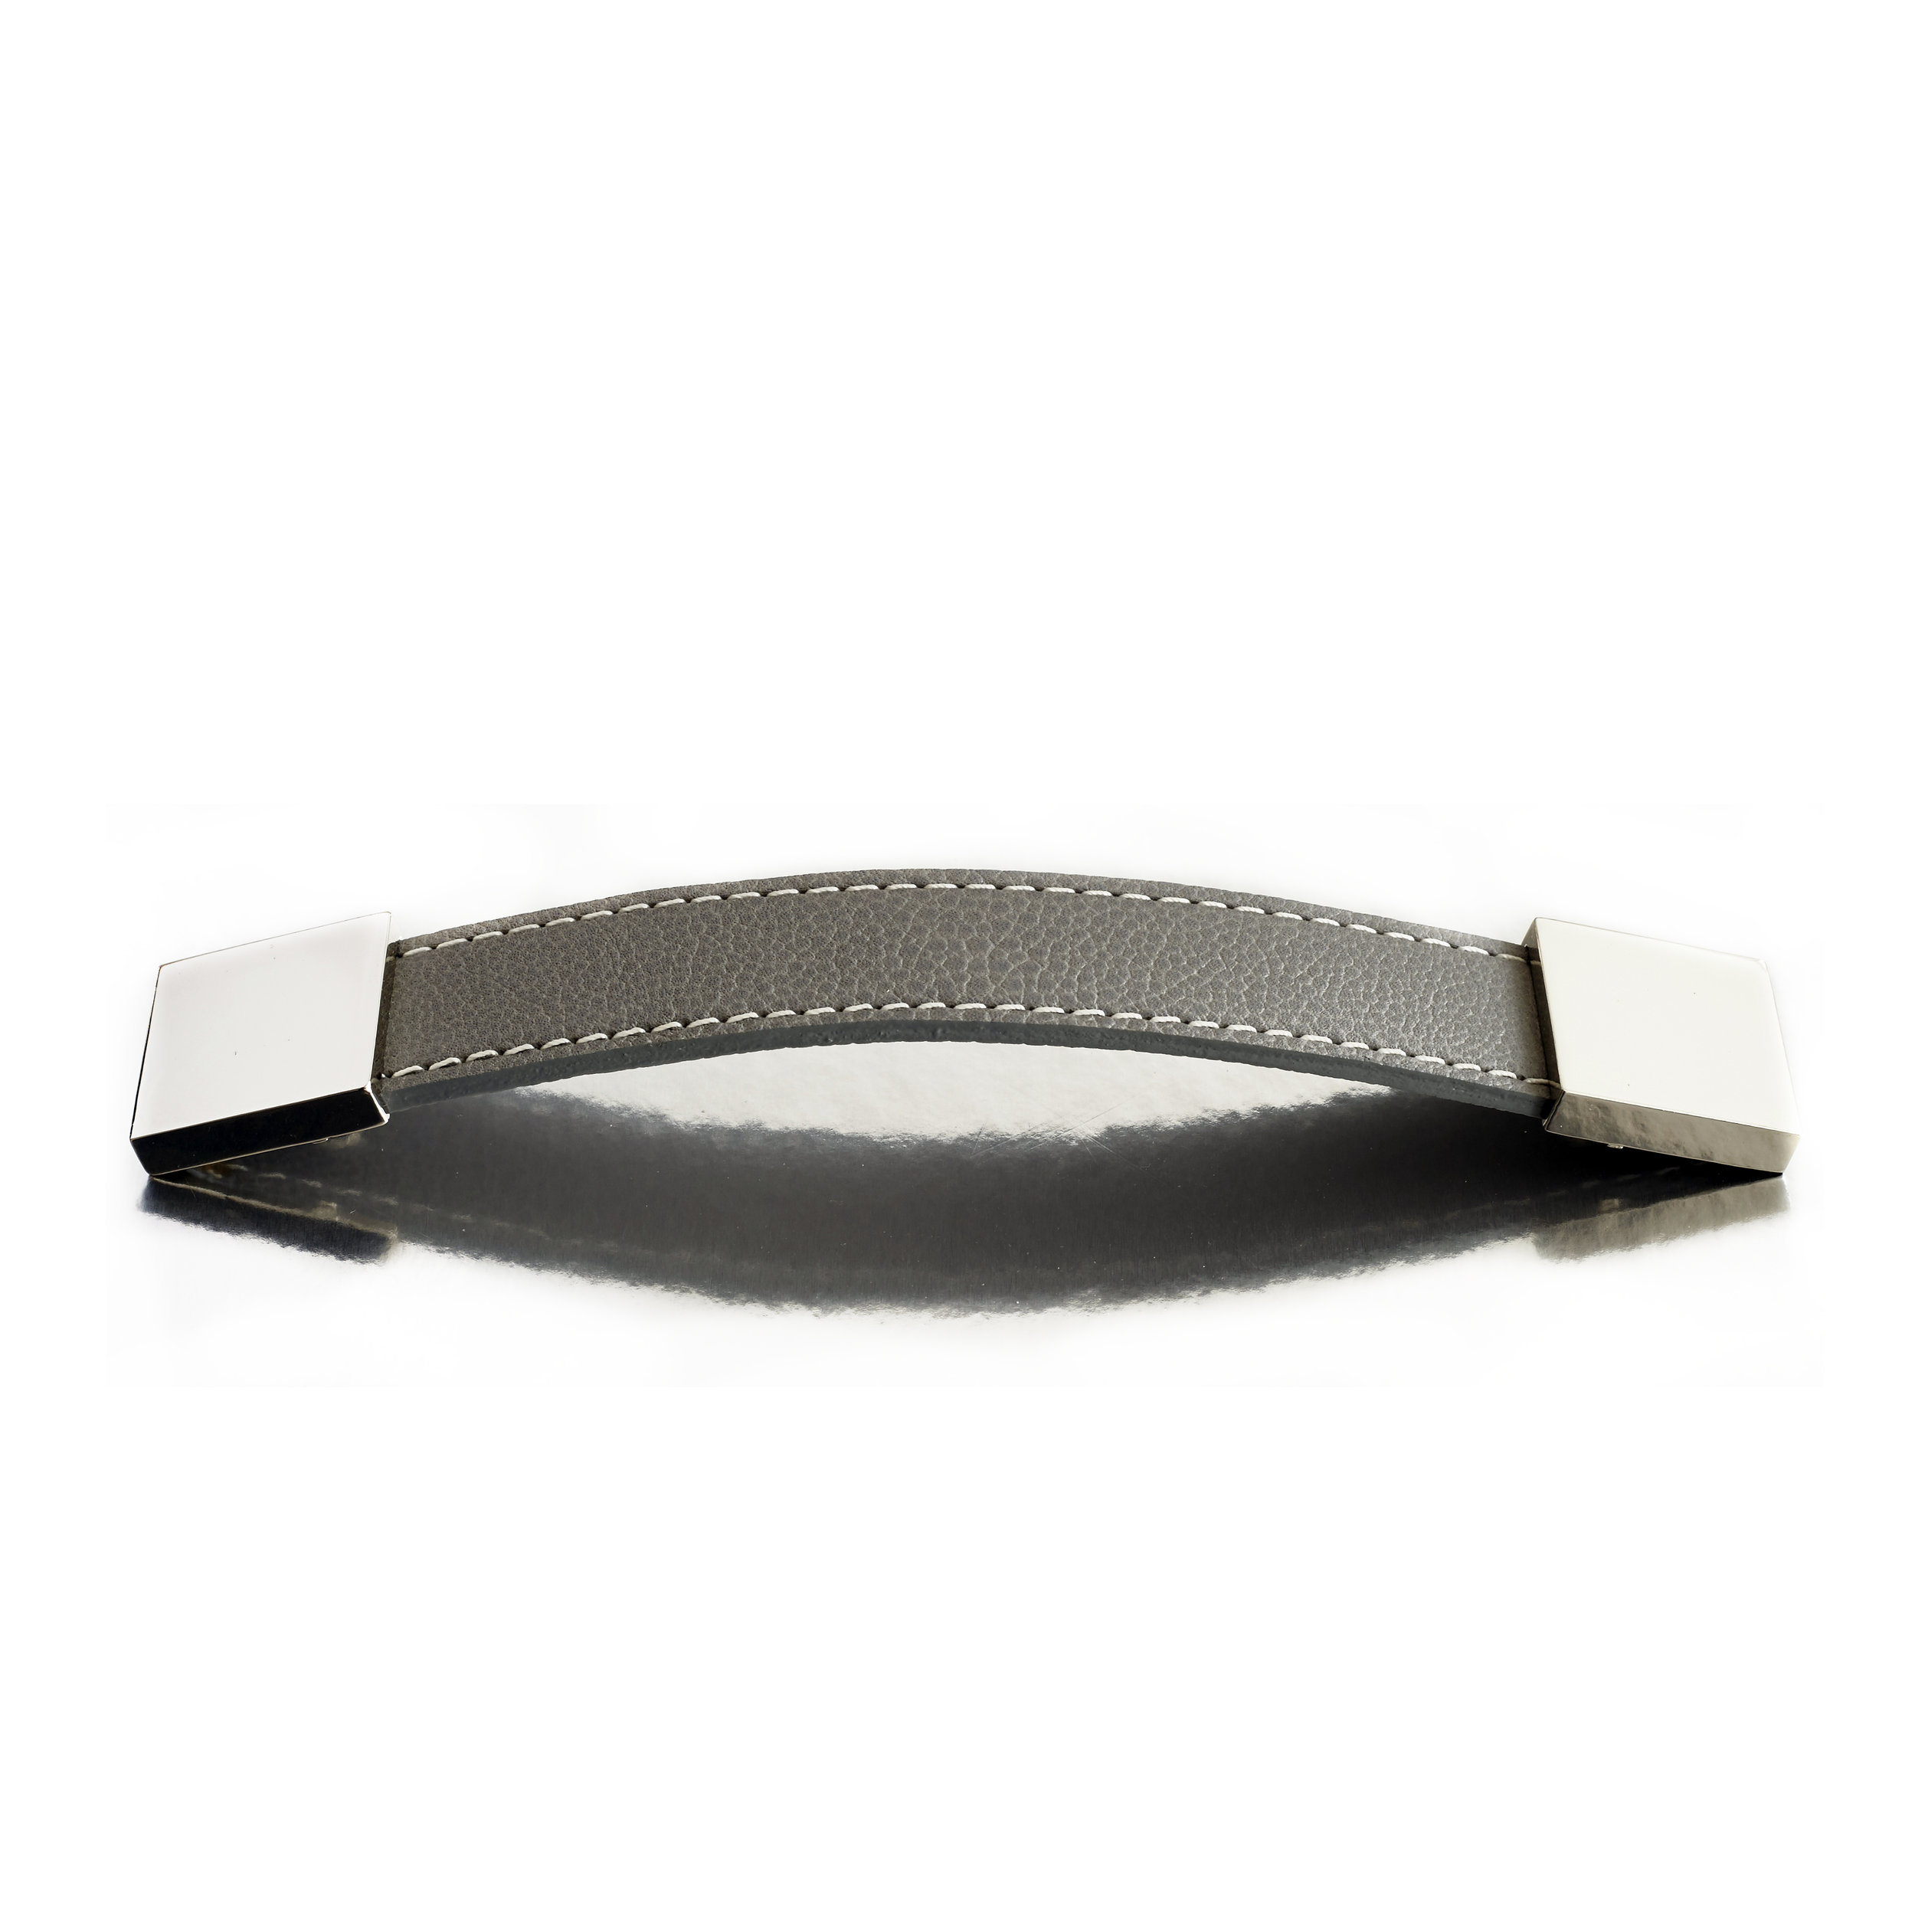 WATCH STRAP I GREY I EQUESTRIAN  Polished Nickel & Stitched Leather